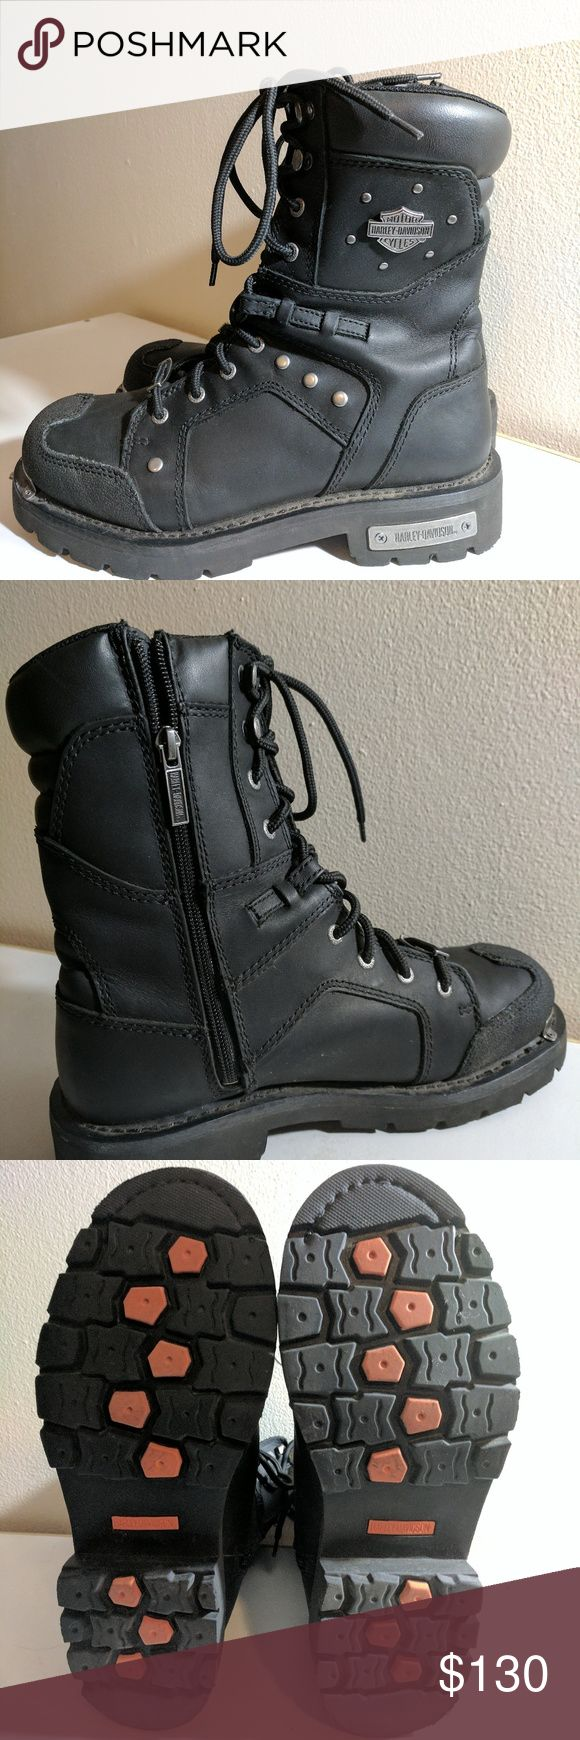 Harley Davidson Women's Riding Boots Women's leather riding boots. Harley-Davidson Shoes Combat & Moto Boots